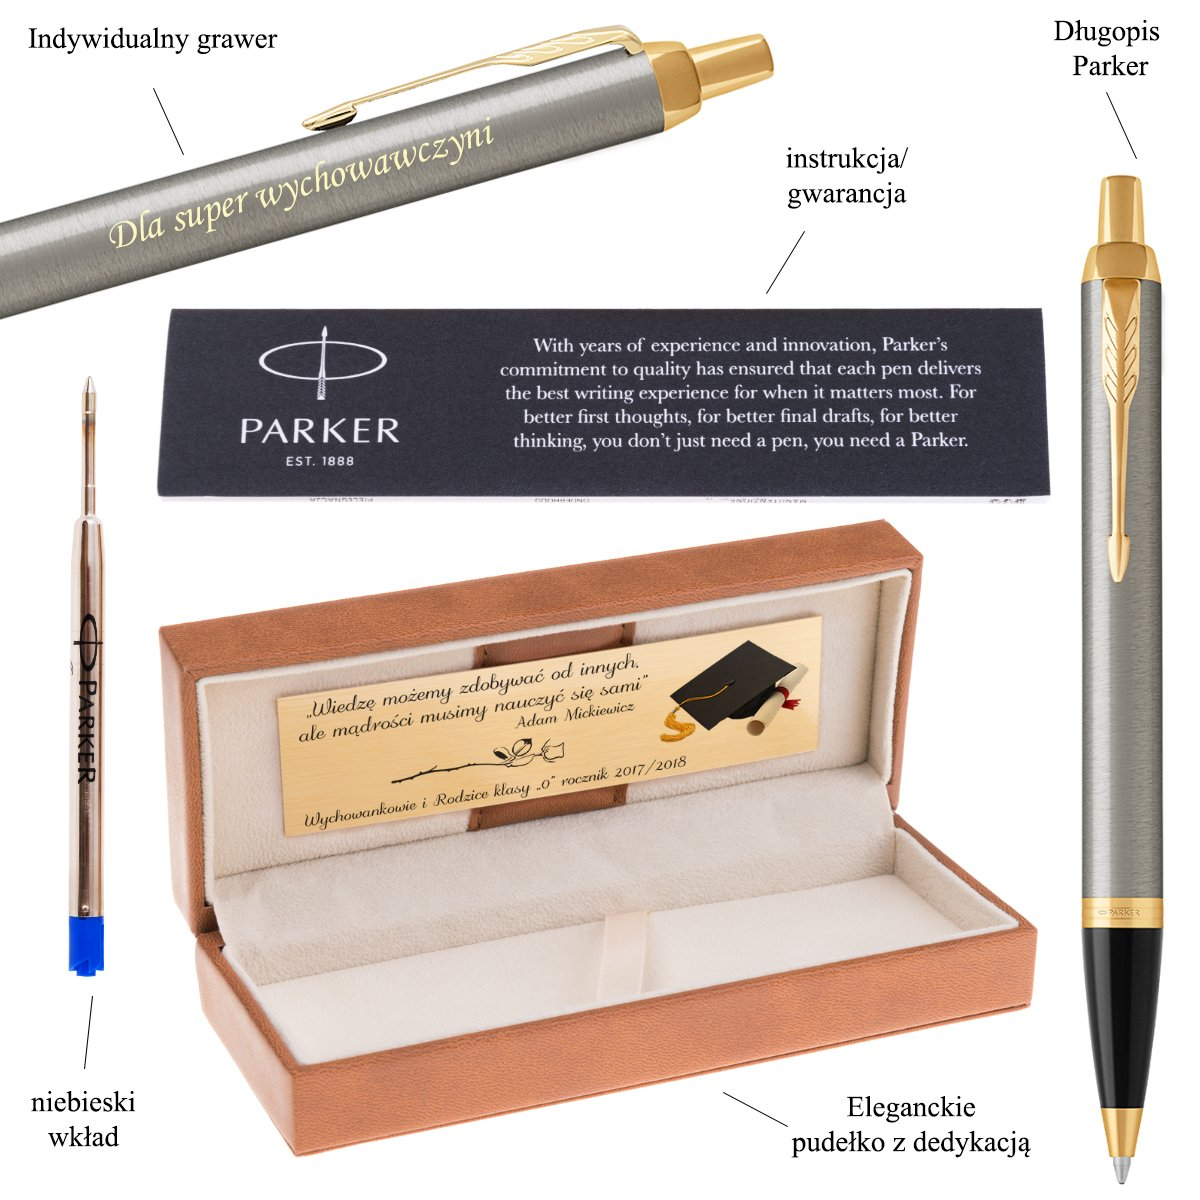 Parker IM Długopis Brushed Metal GT Grawer